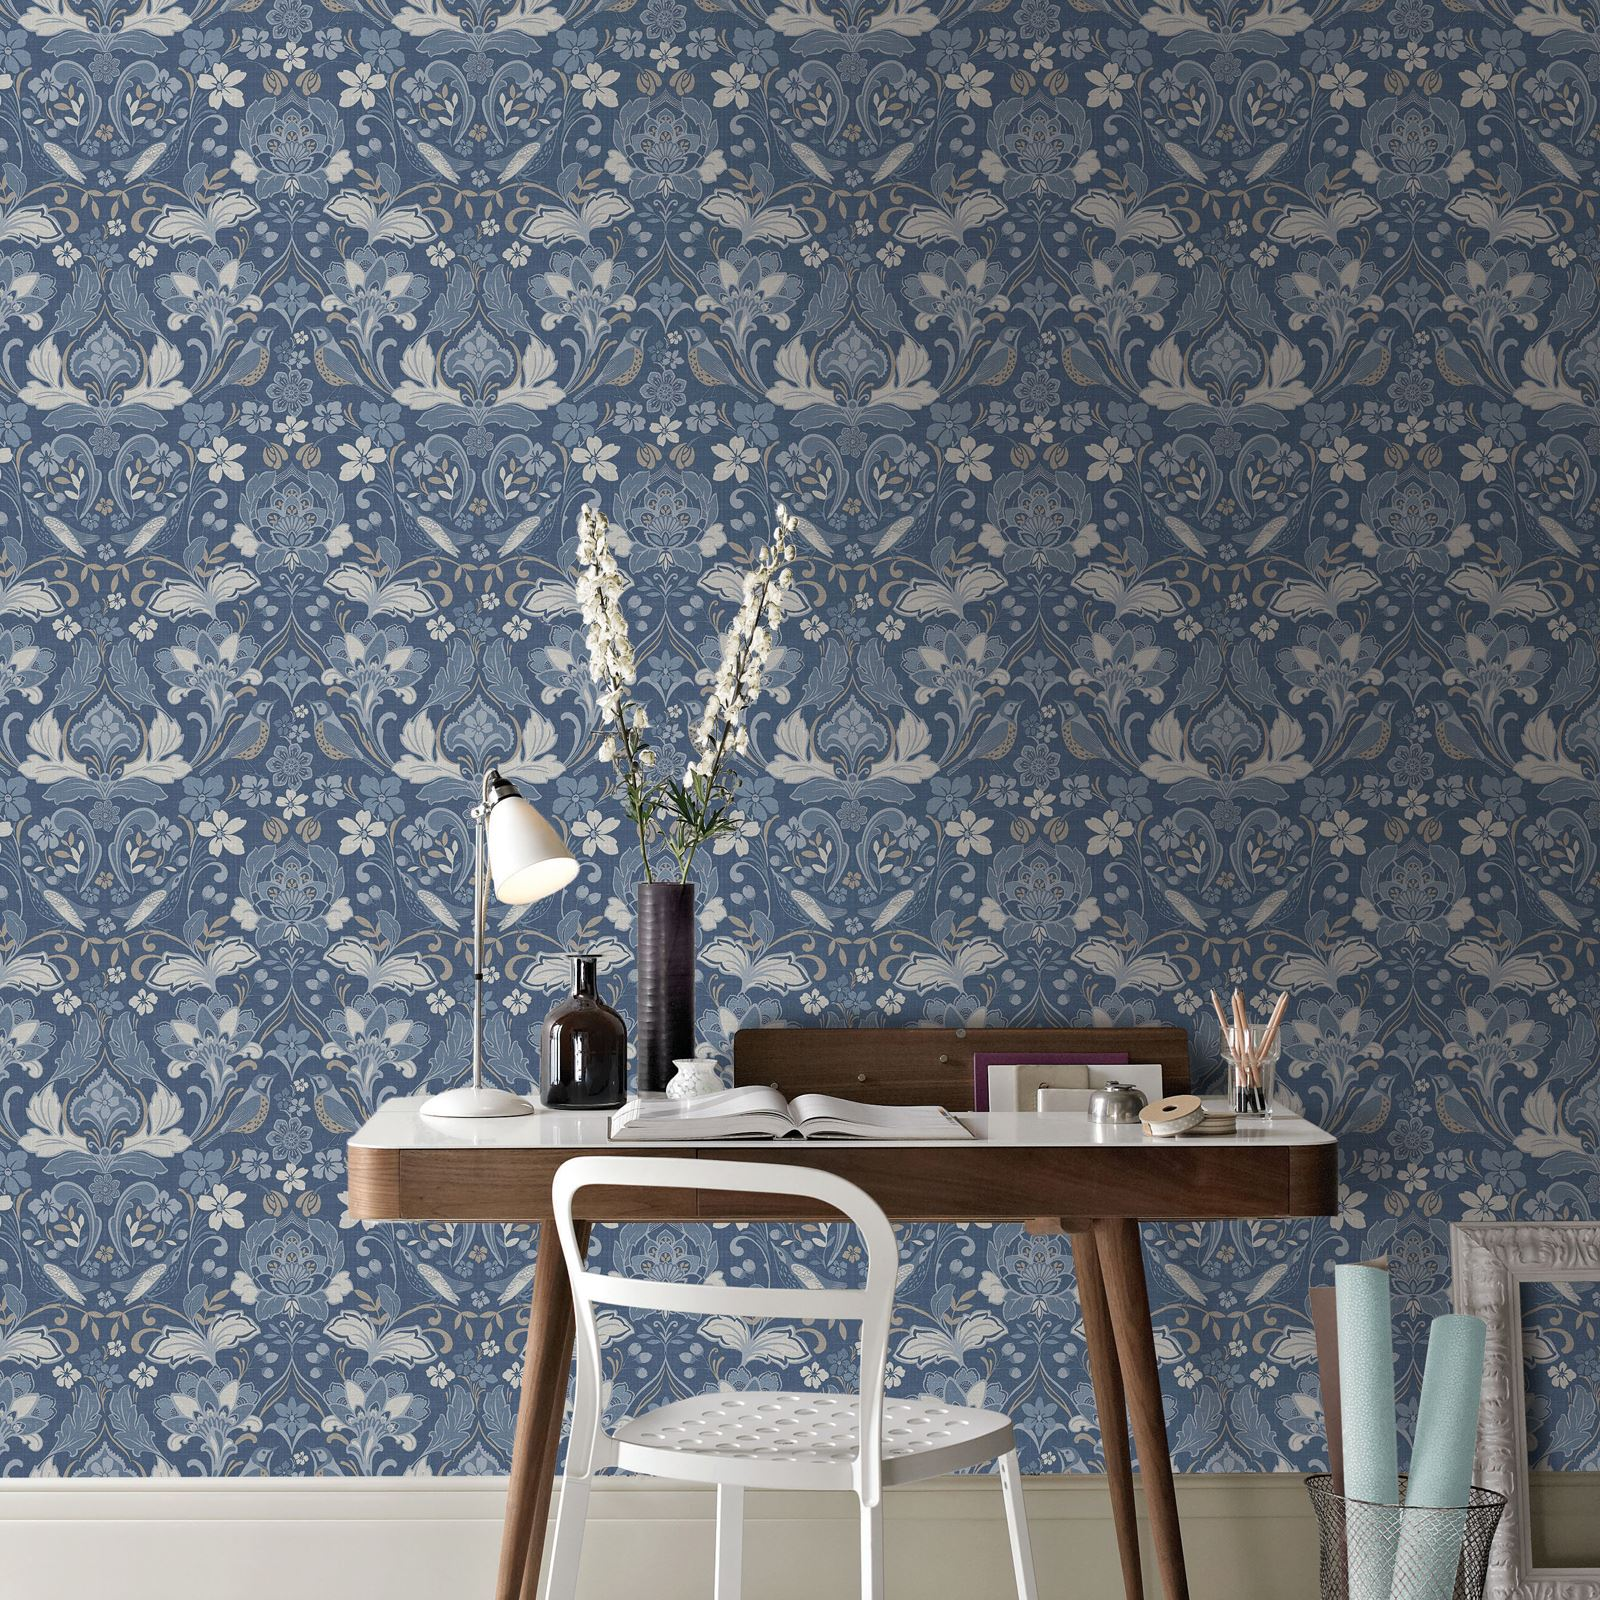 Arthouse Folk Floral Damask-like Flowers Leaves Birds Wallpaper Blue /& Grey